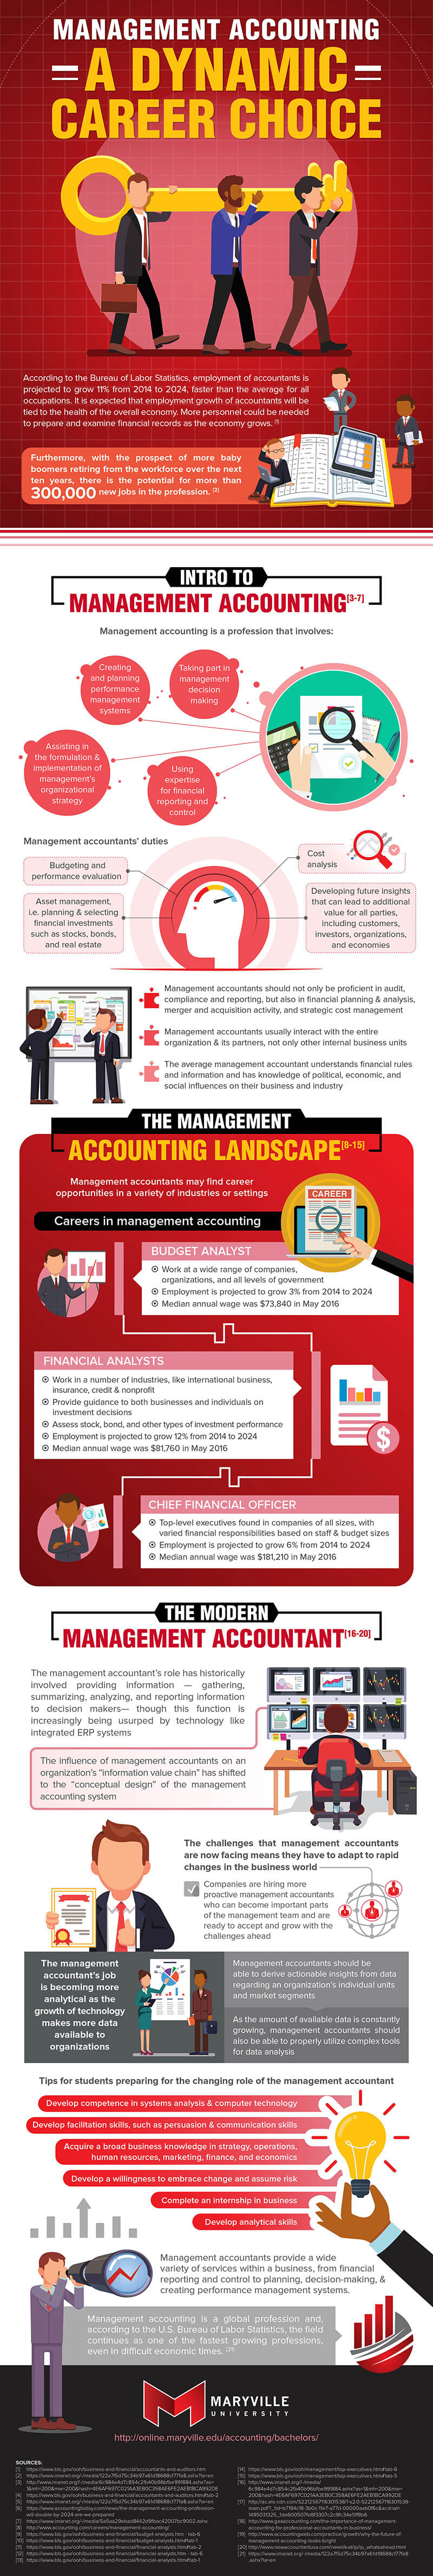 An infographic about management accounting by Maryville University.